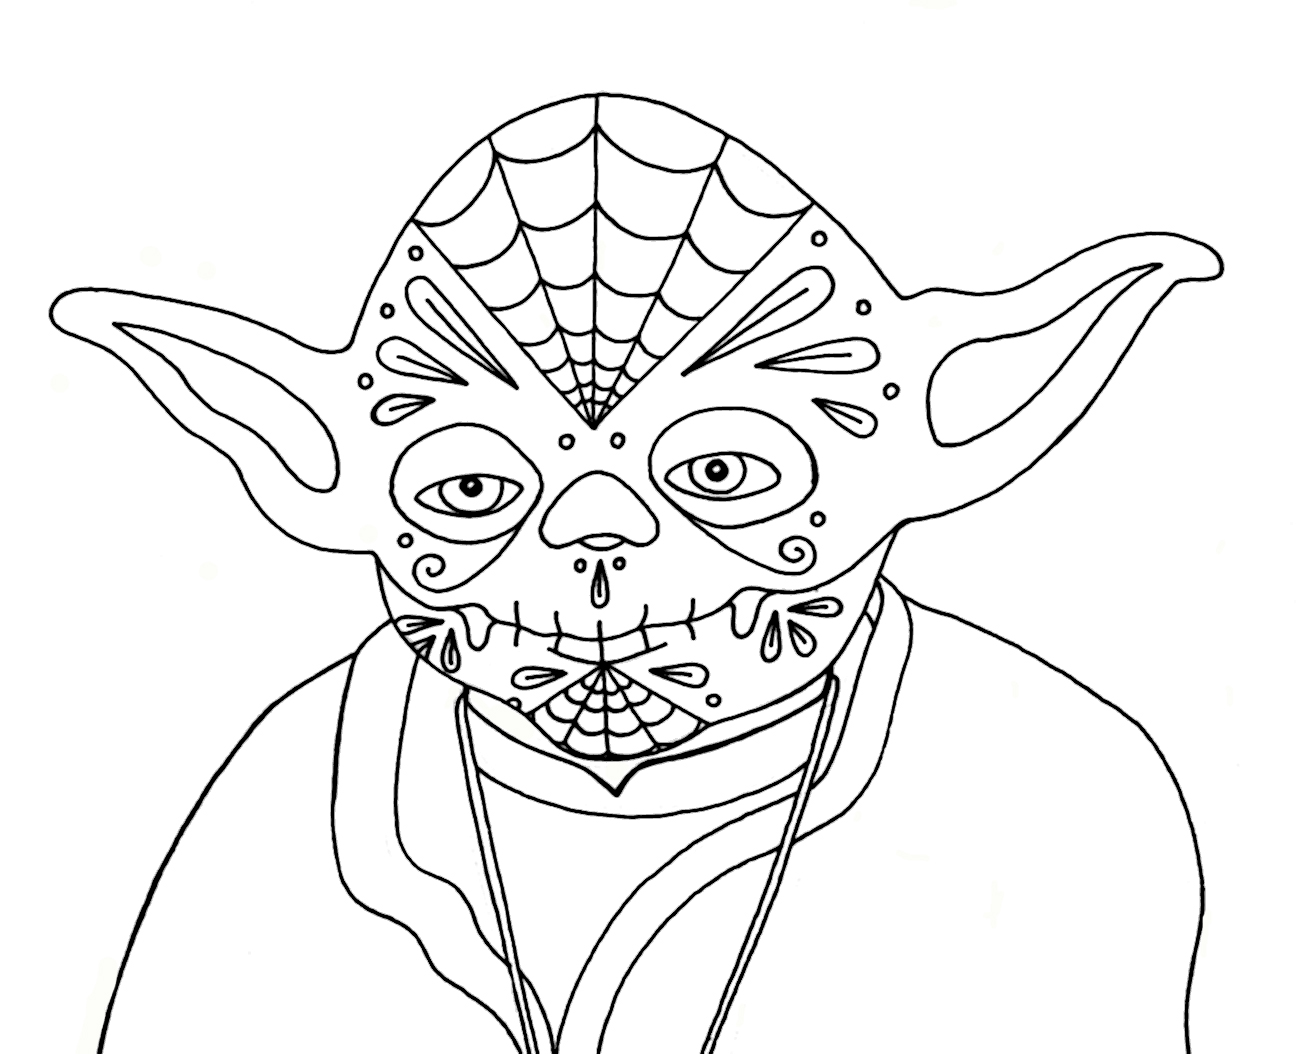 Yucca Flats, N.M.: Wenchkin\'s Coloring Pages - Dia de los Yoda